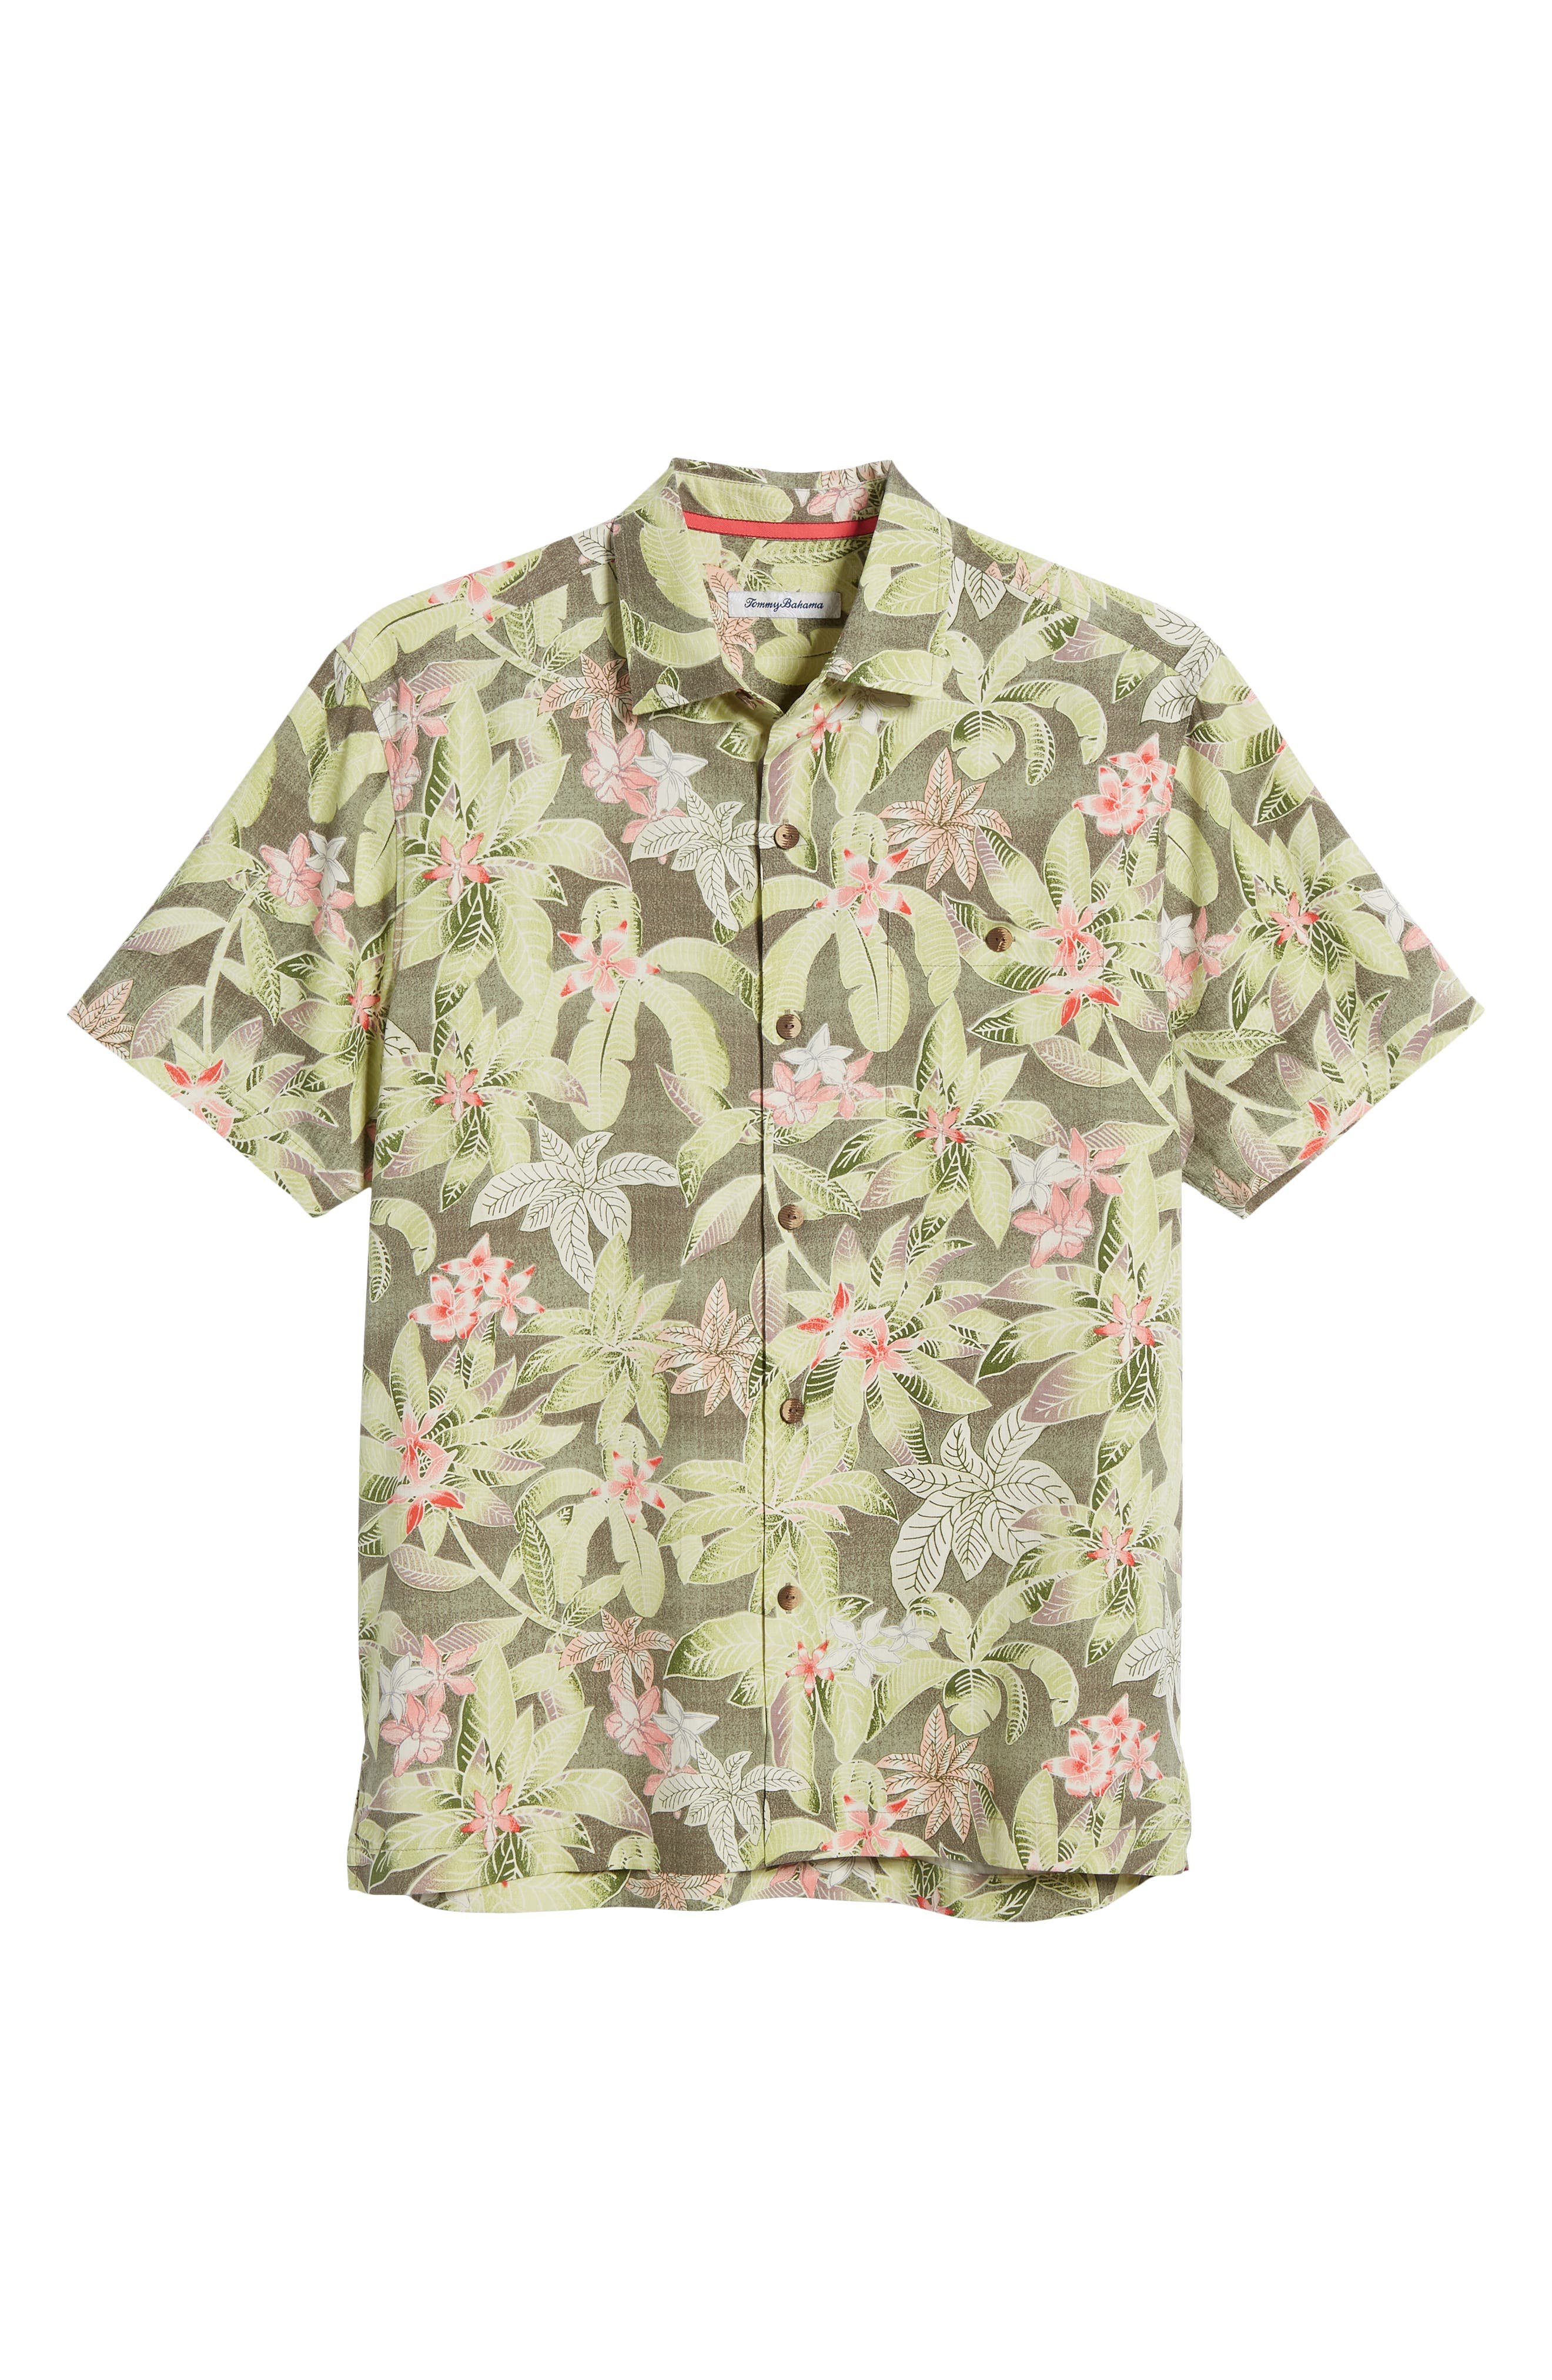 El Medano Jungle Silk Camp Shirt,                             Alternate thumbnail 6, color,                             Dusty Thyme